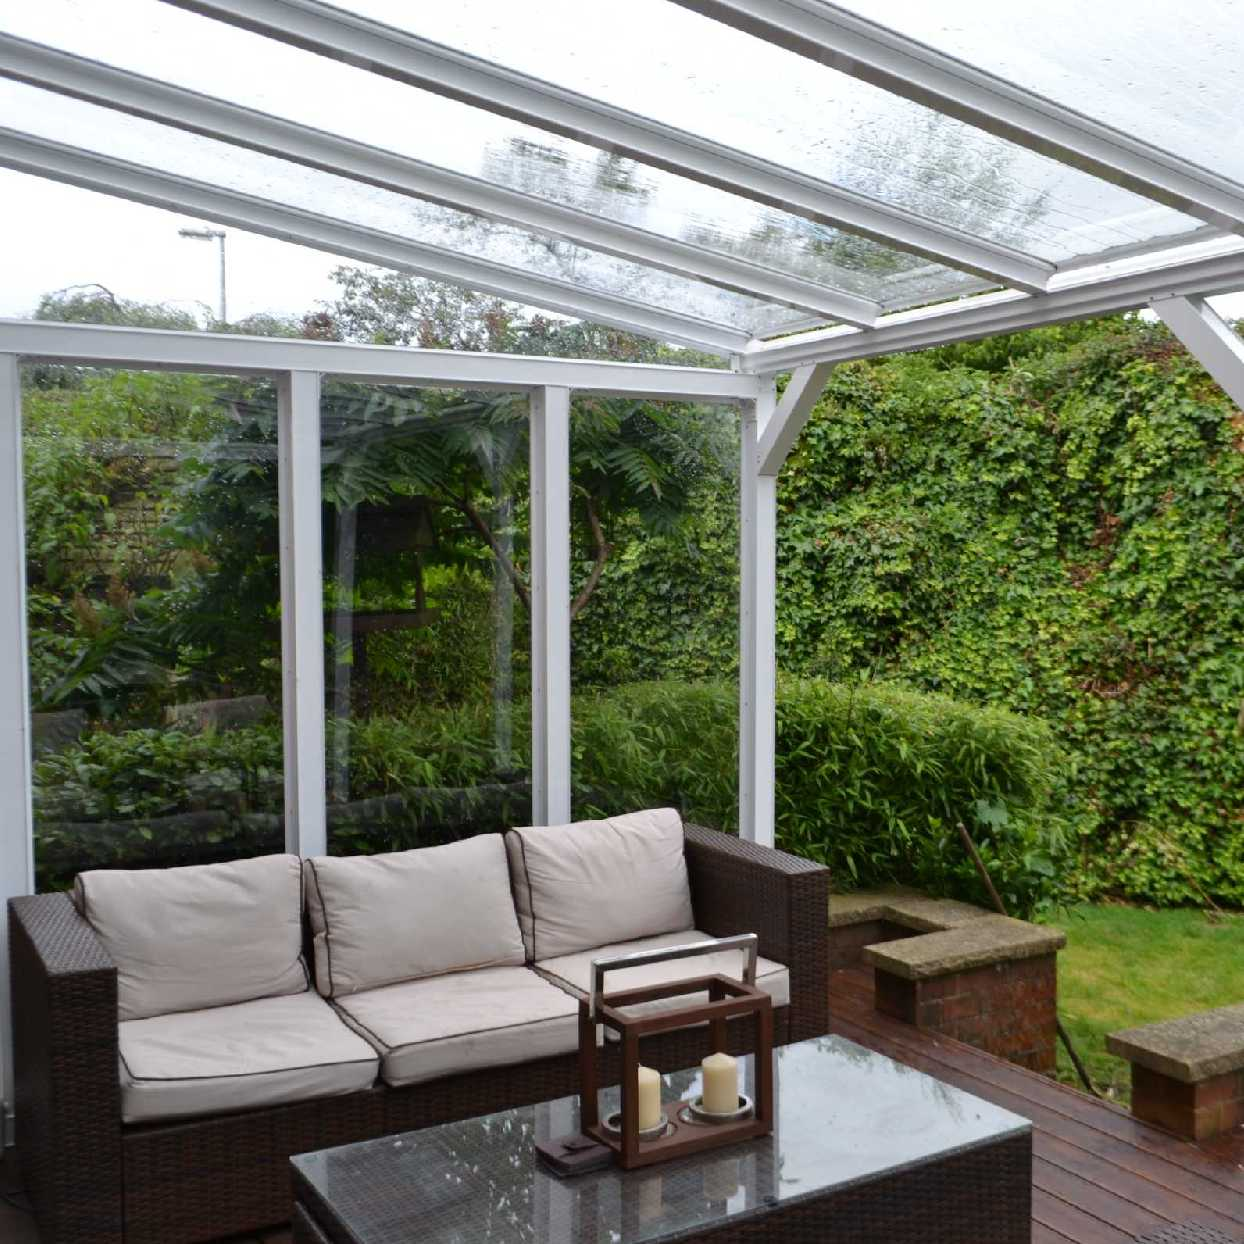 Great selection of Omega Smart White Lean-To Canopy with 16mm Polycarbonate Glazing - 2.8m (W) x 4.0m(P), (2) Supporting Posts